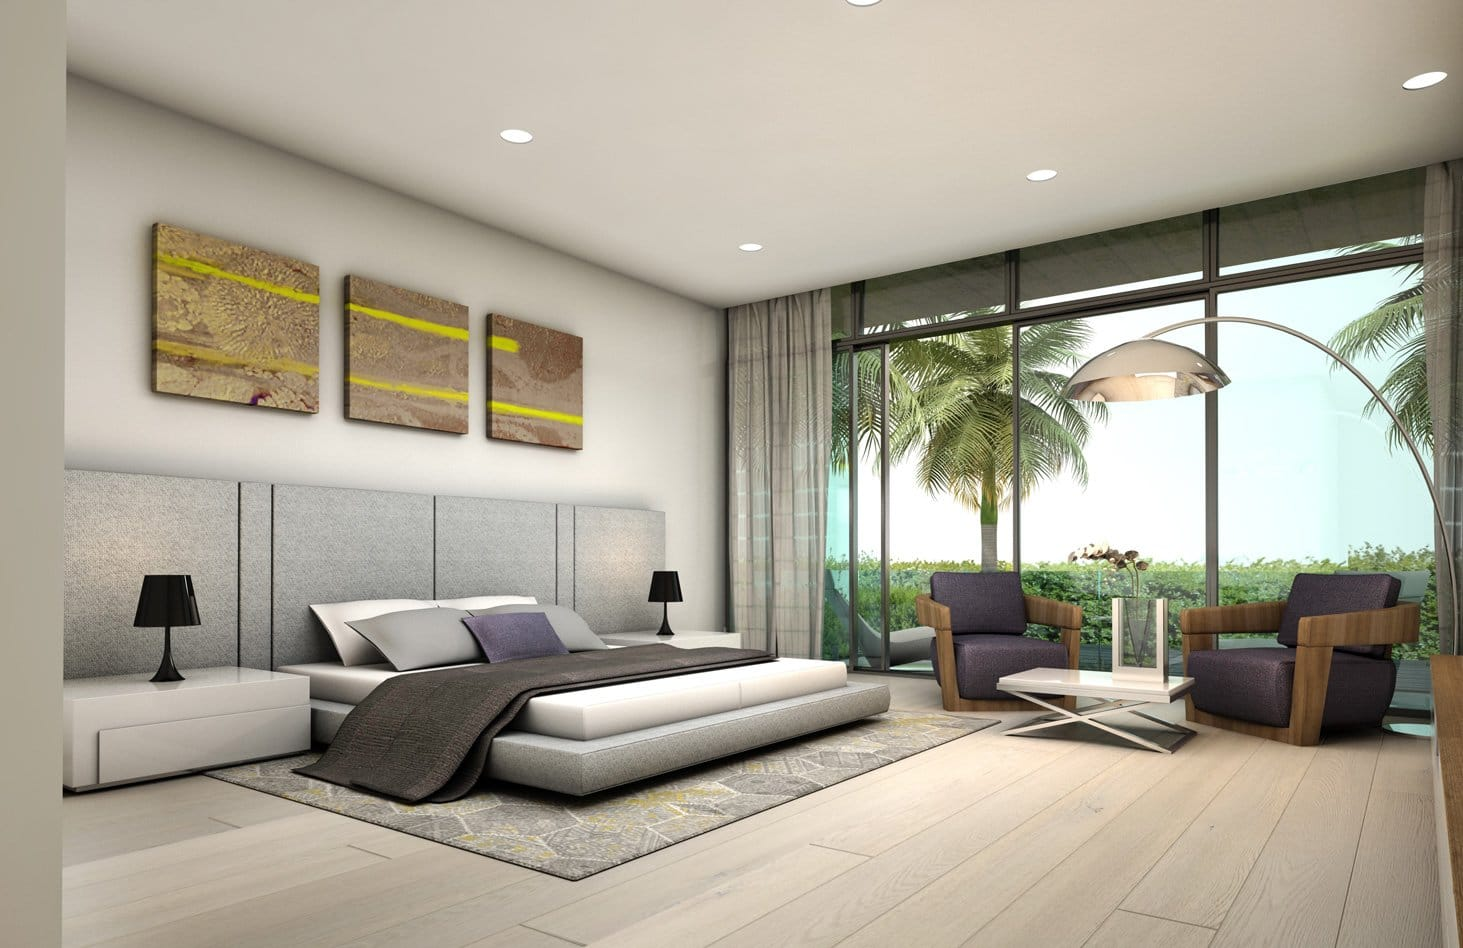 Interior Design bedroom view project in 65 Bal Harbour, Florida